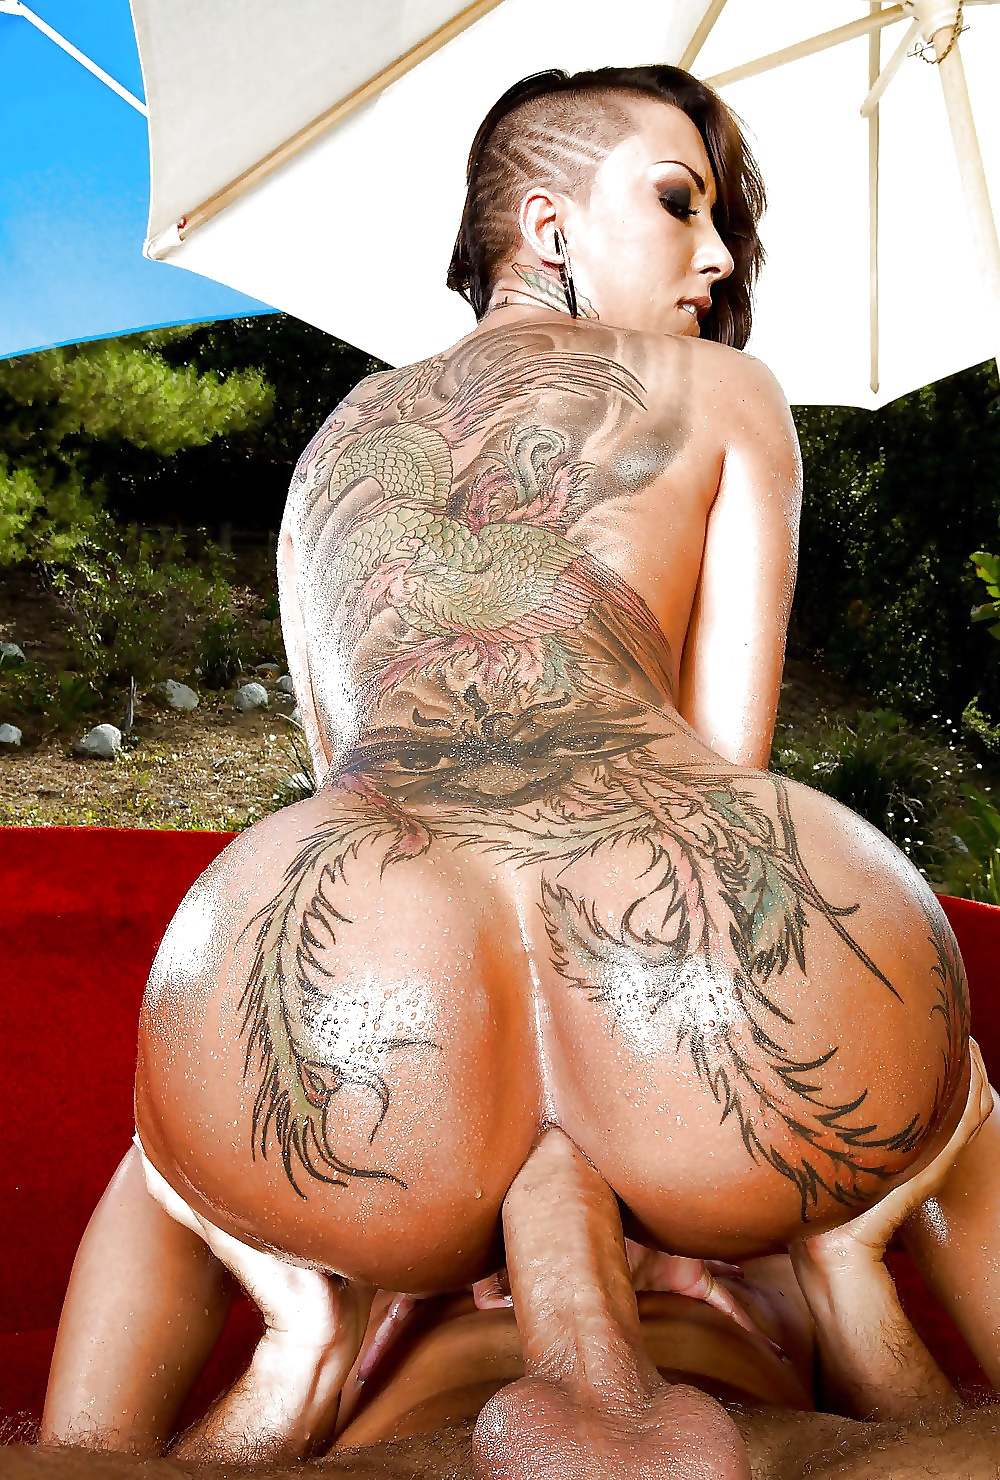 pornstar-with-back-tattoo